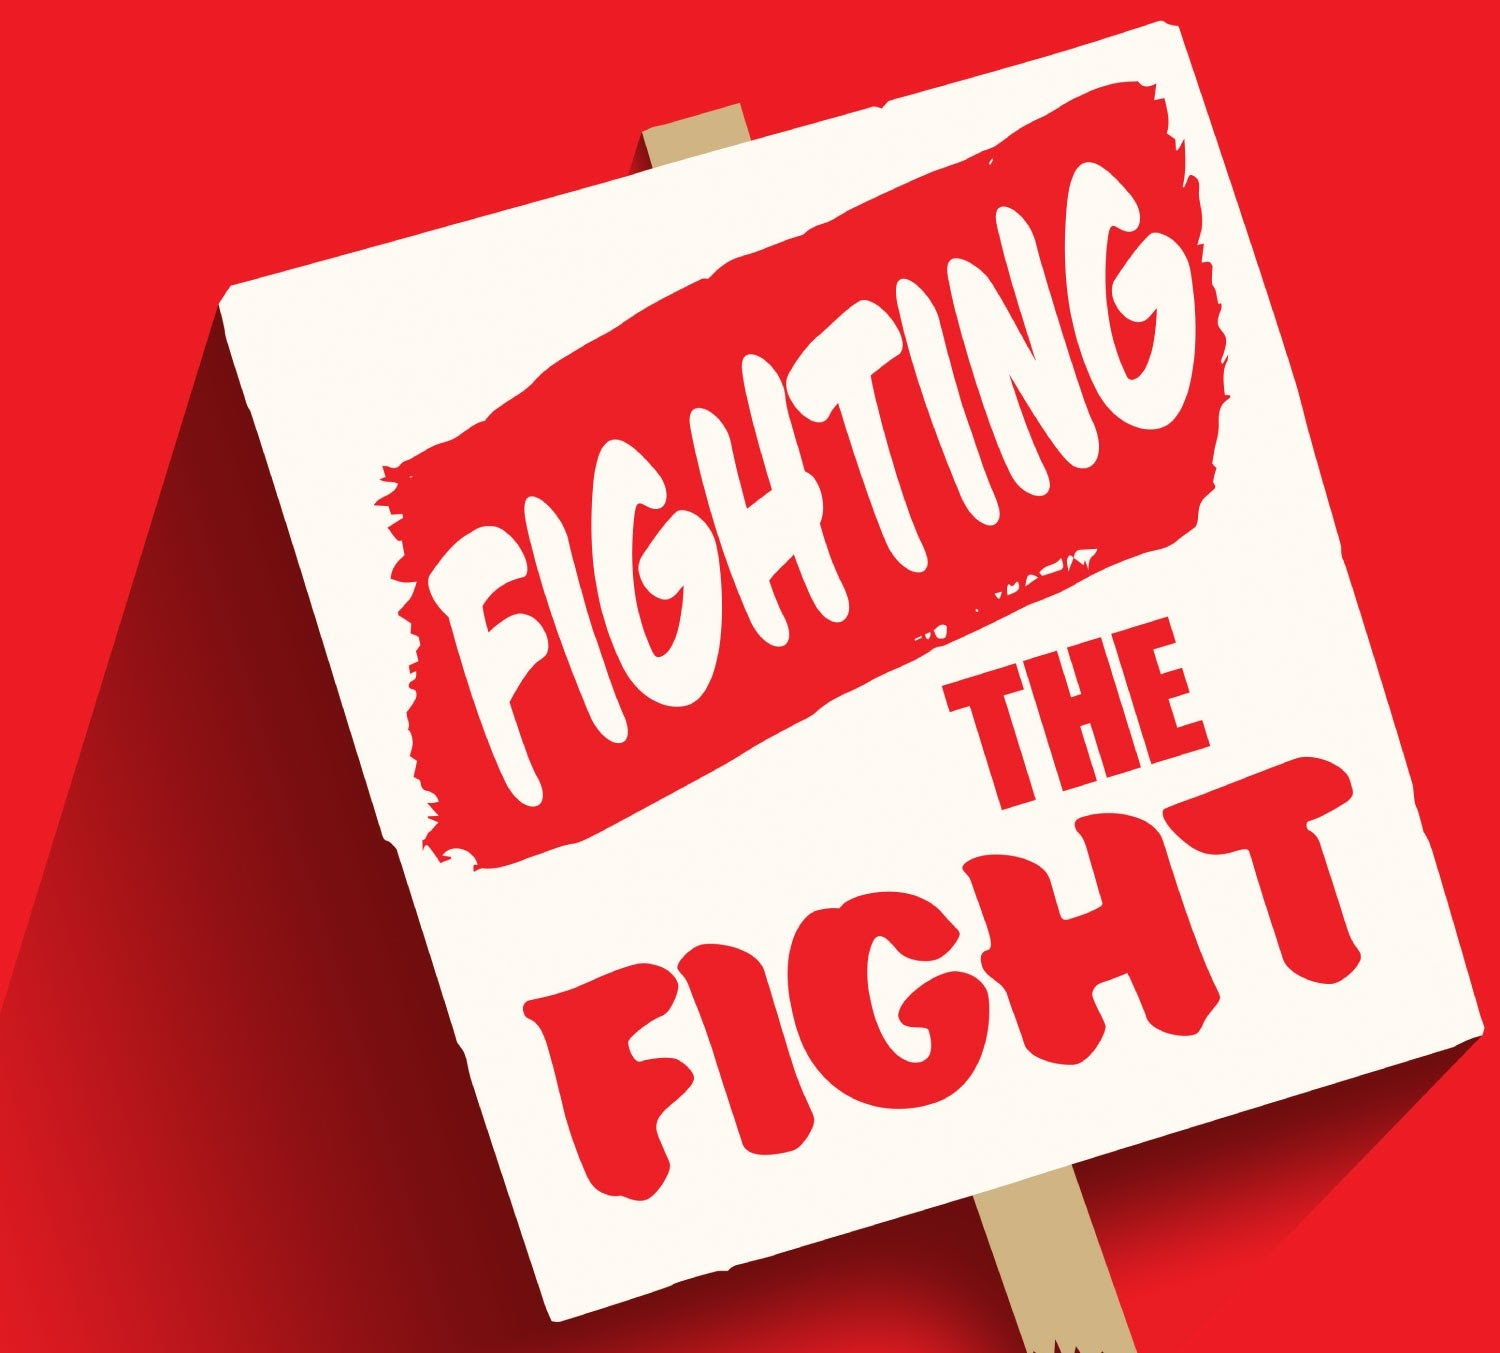 This image that says fighting the fight indicates the struggle that often occurs when reaching your activist goal while taking care o yourself.